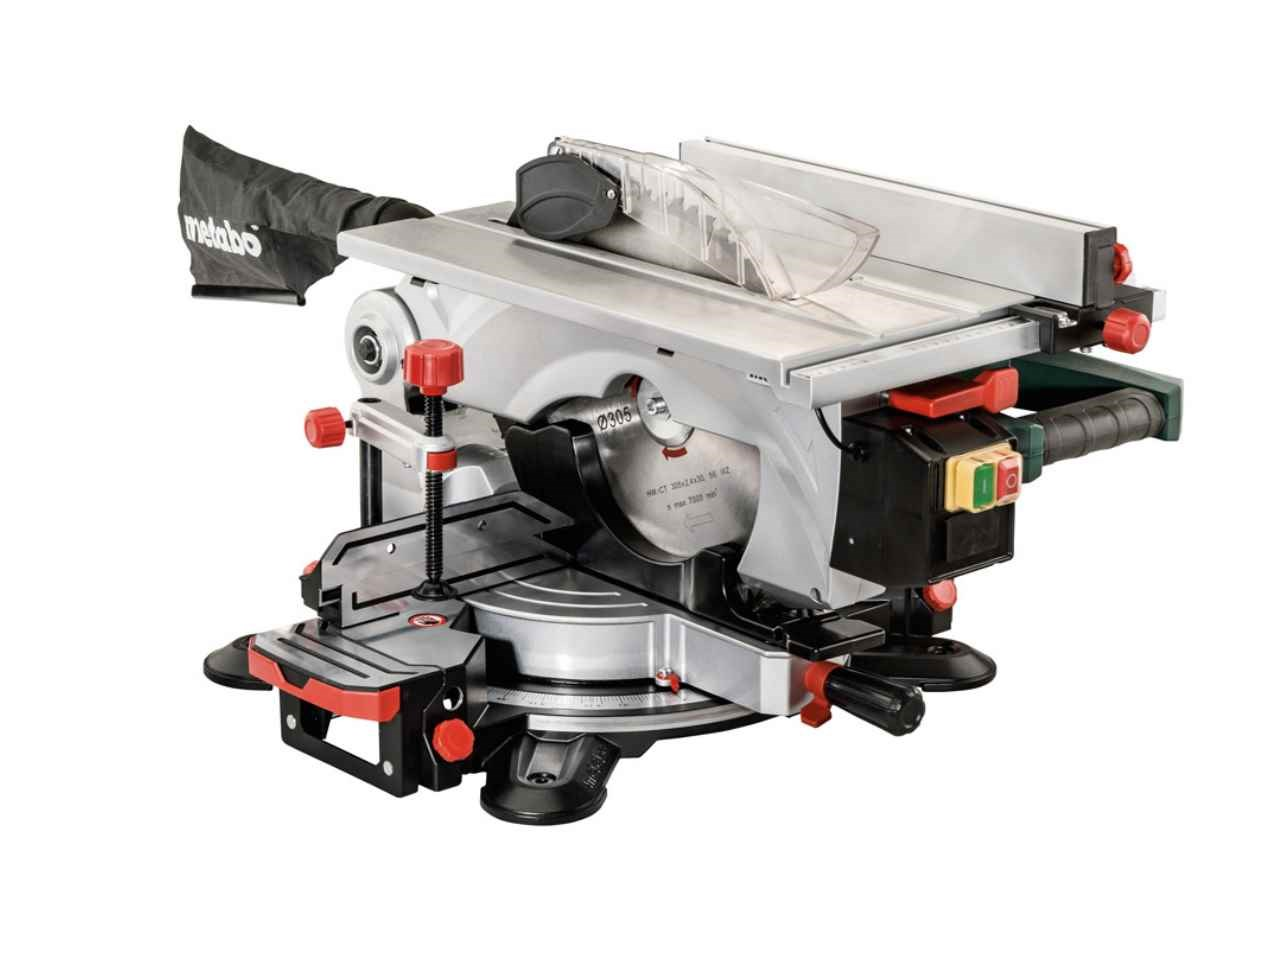 Metabo Kgt305m 240v 12 Inch Crosscut And Table Combination Saw